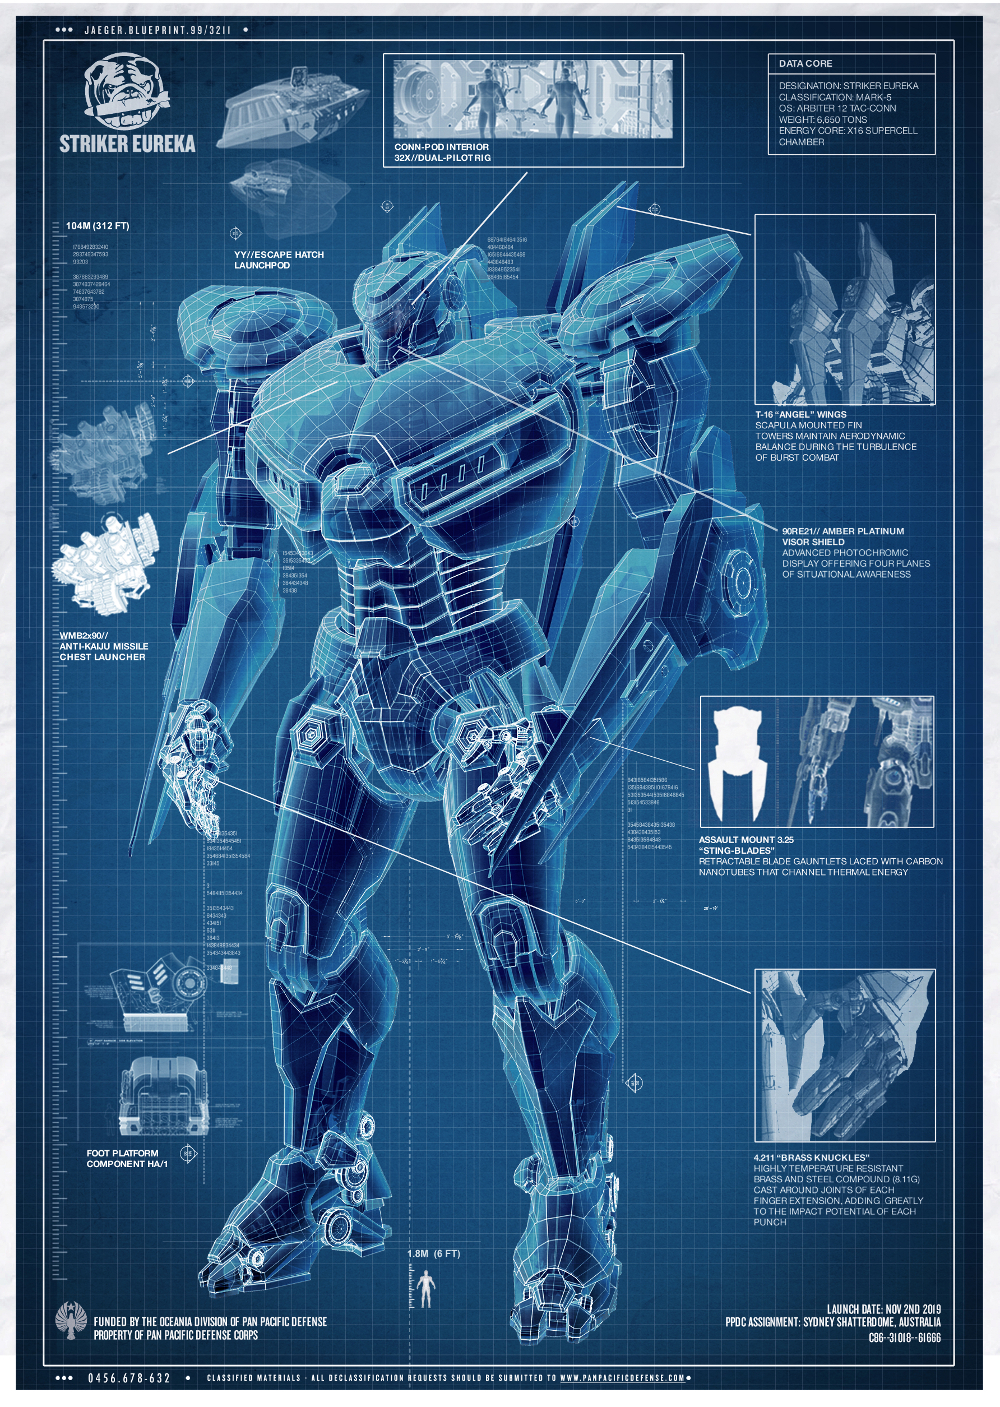 Striker eureka jaeger pacific rim wiki fandom powered by wikia striker eureka blueprints malvernweather